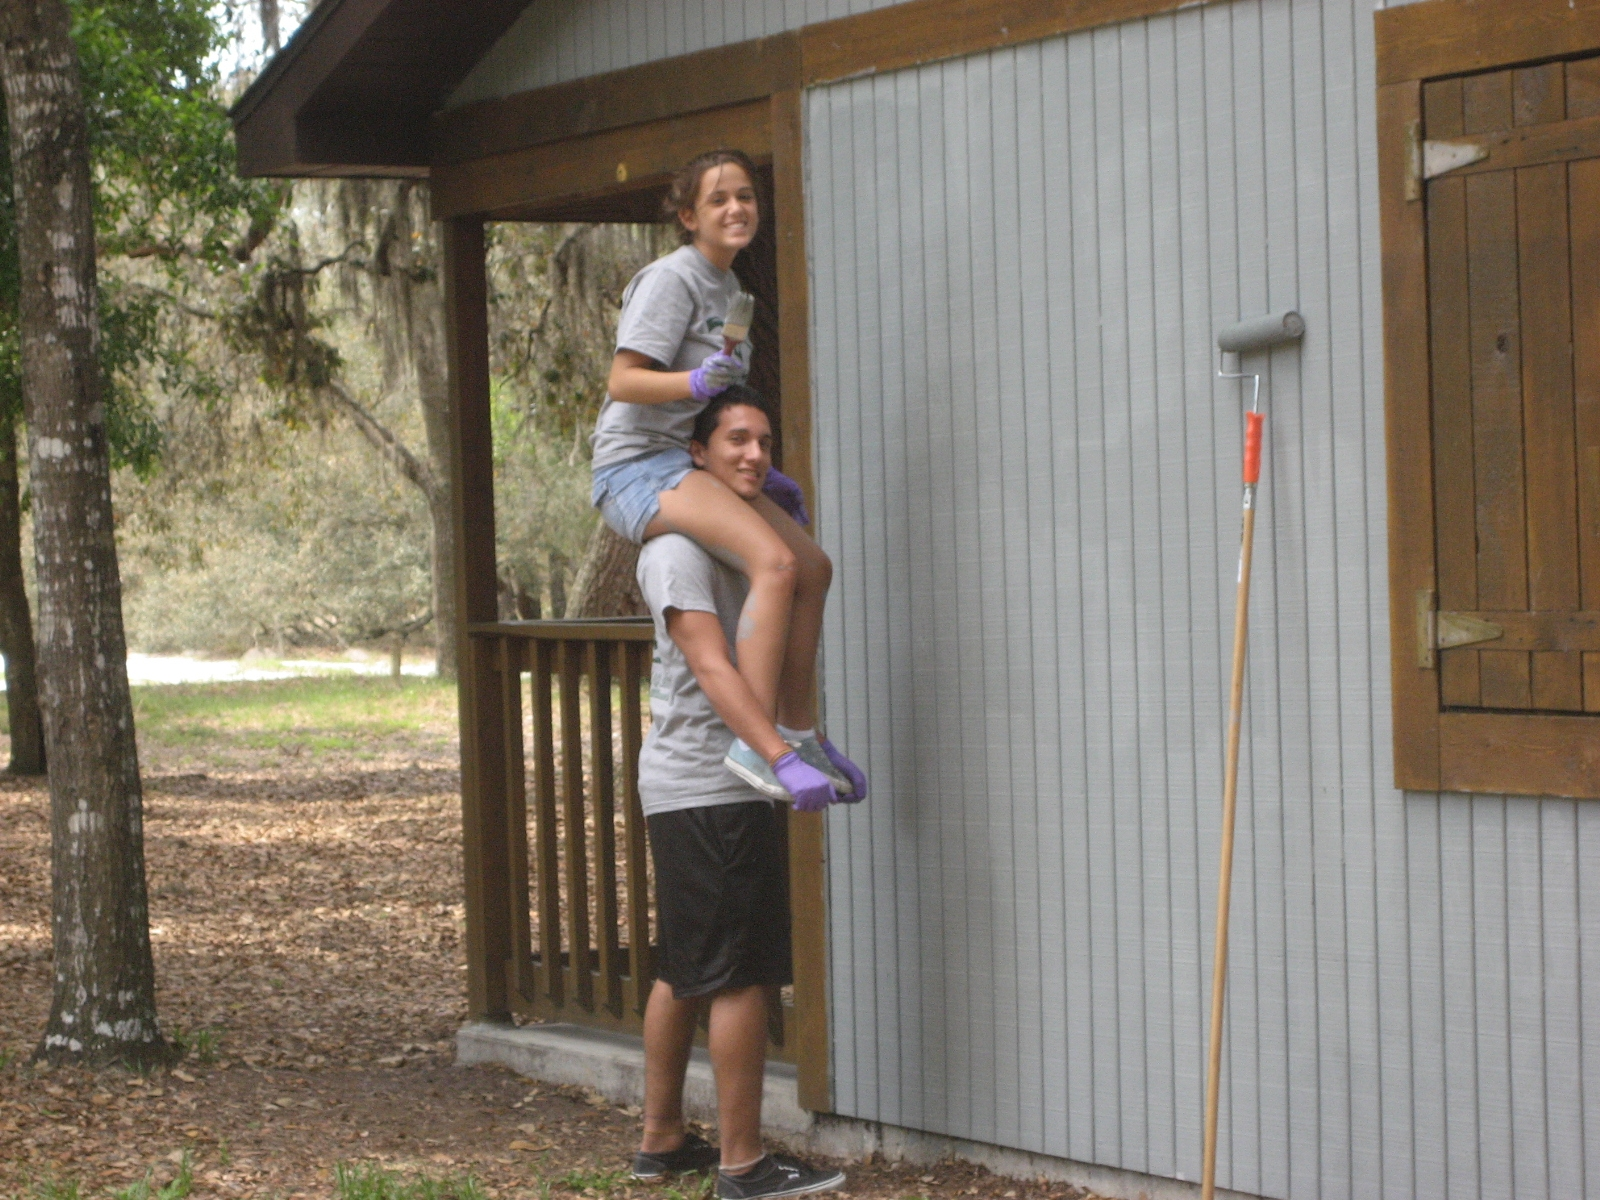 Painting Cabin at Spruce Up Starkey